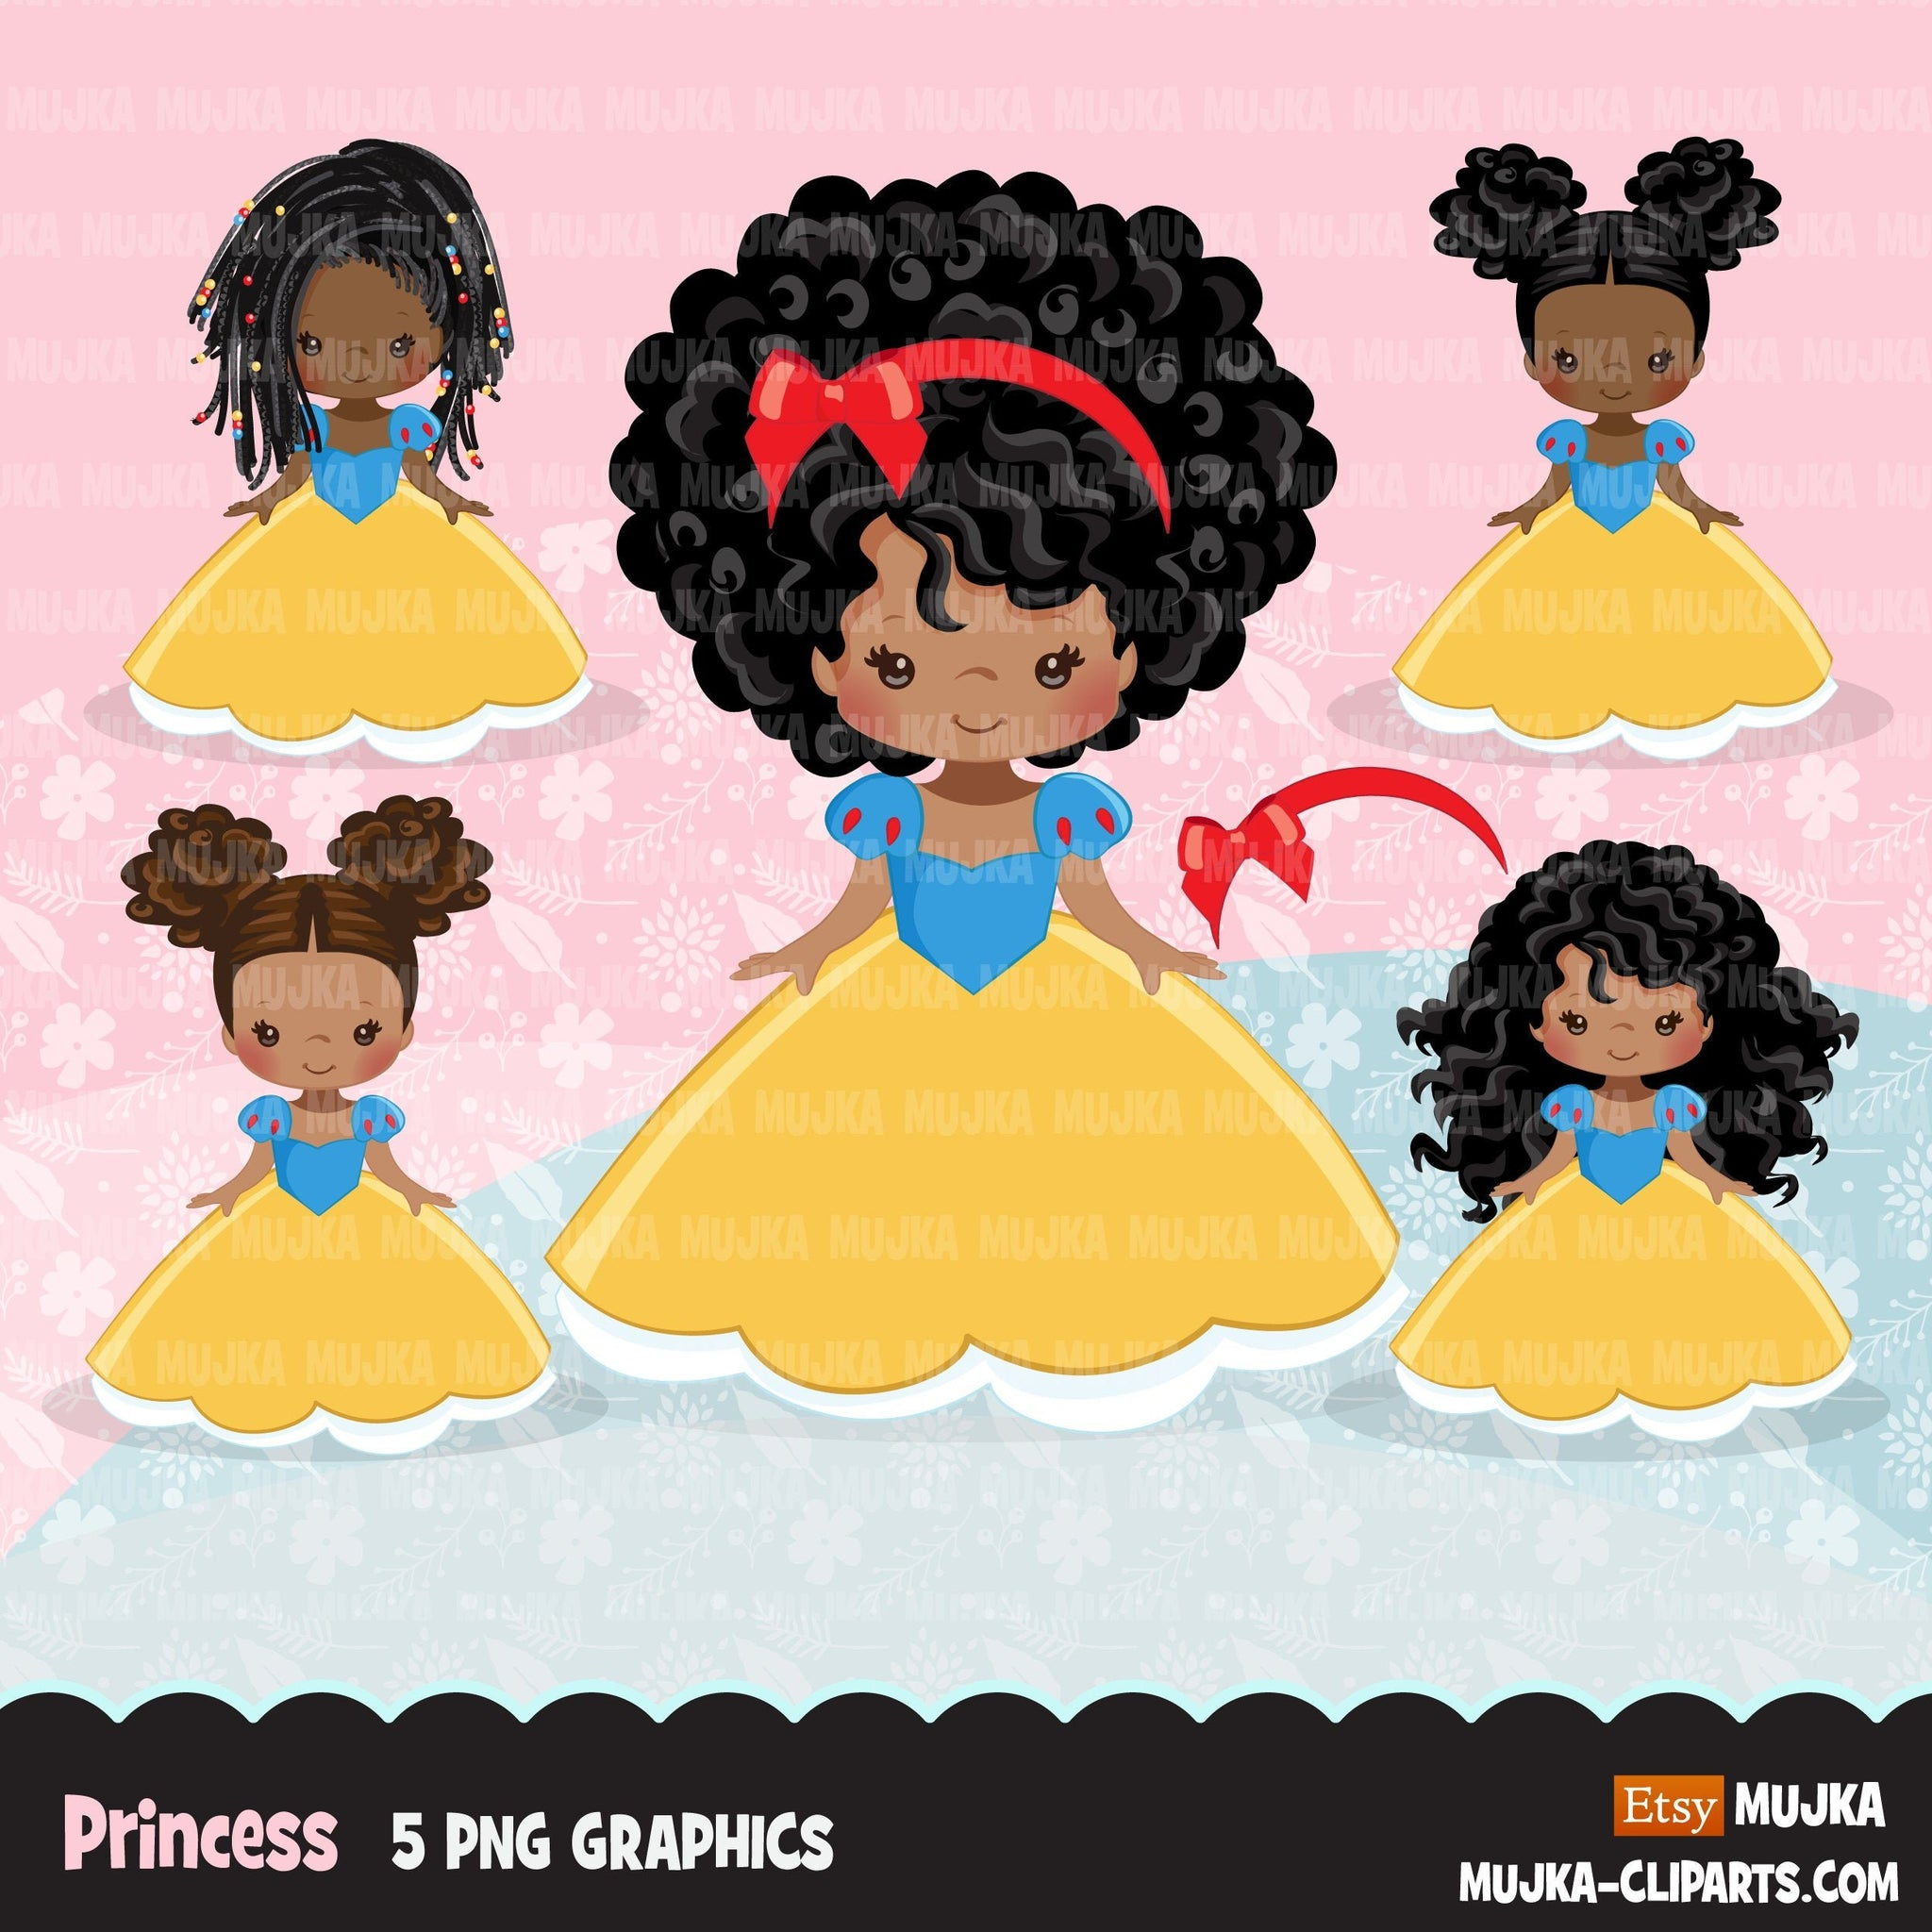 Black Princess clipart, fairy tale graphics, girls story book, red, blue, yellow princess dress, personal use clip art